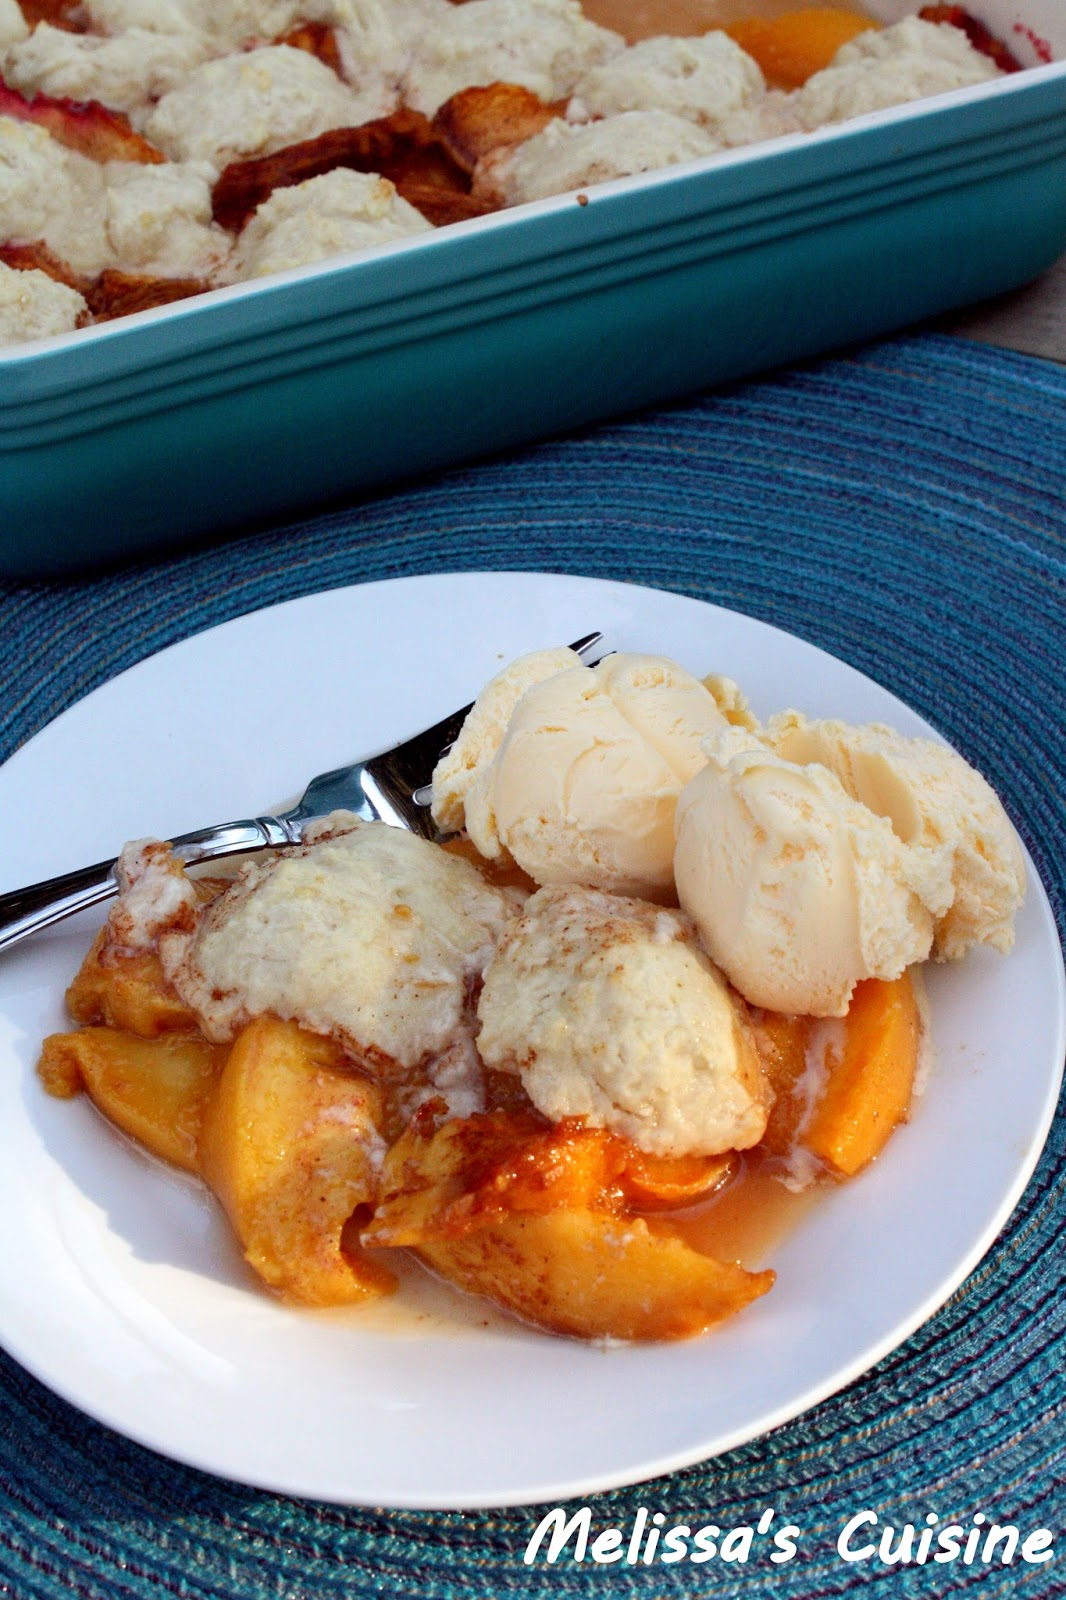 Melissa's Cuisine: Peach Cobbler {Flashback Friday}